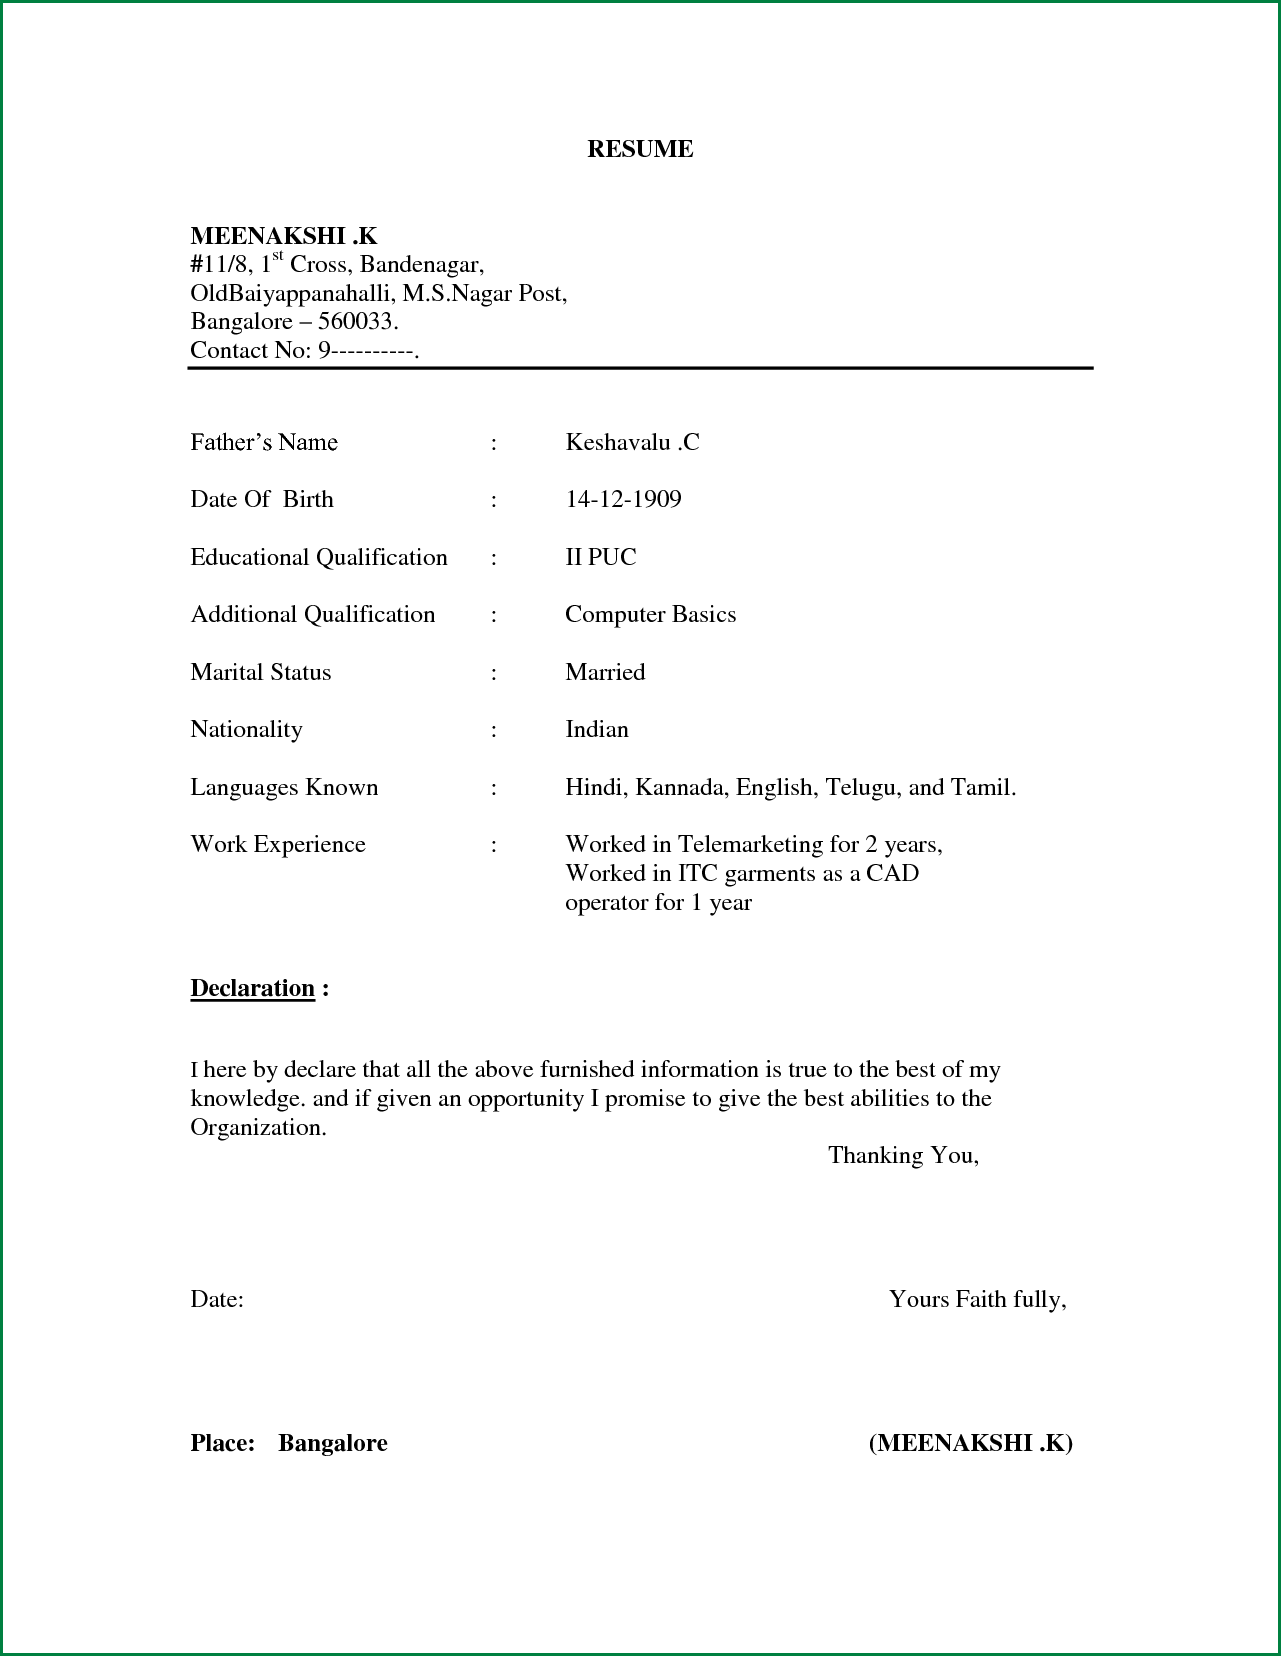 Simple Resume Format For Freshers In Word File137085913g